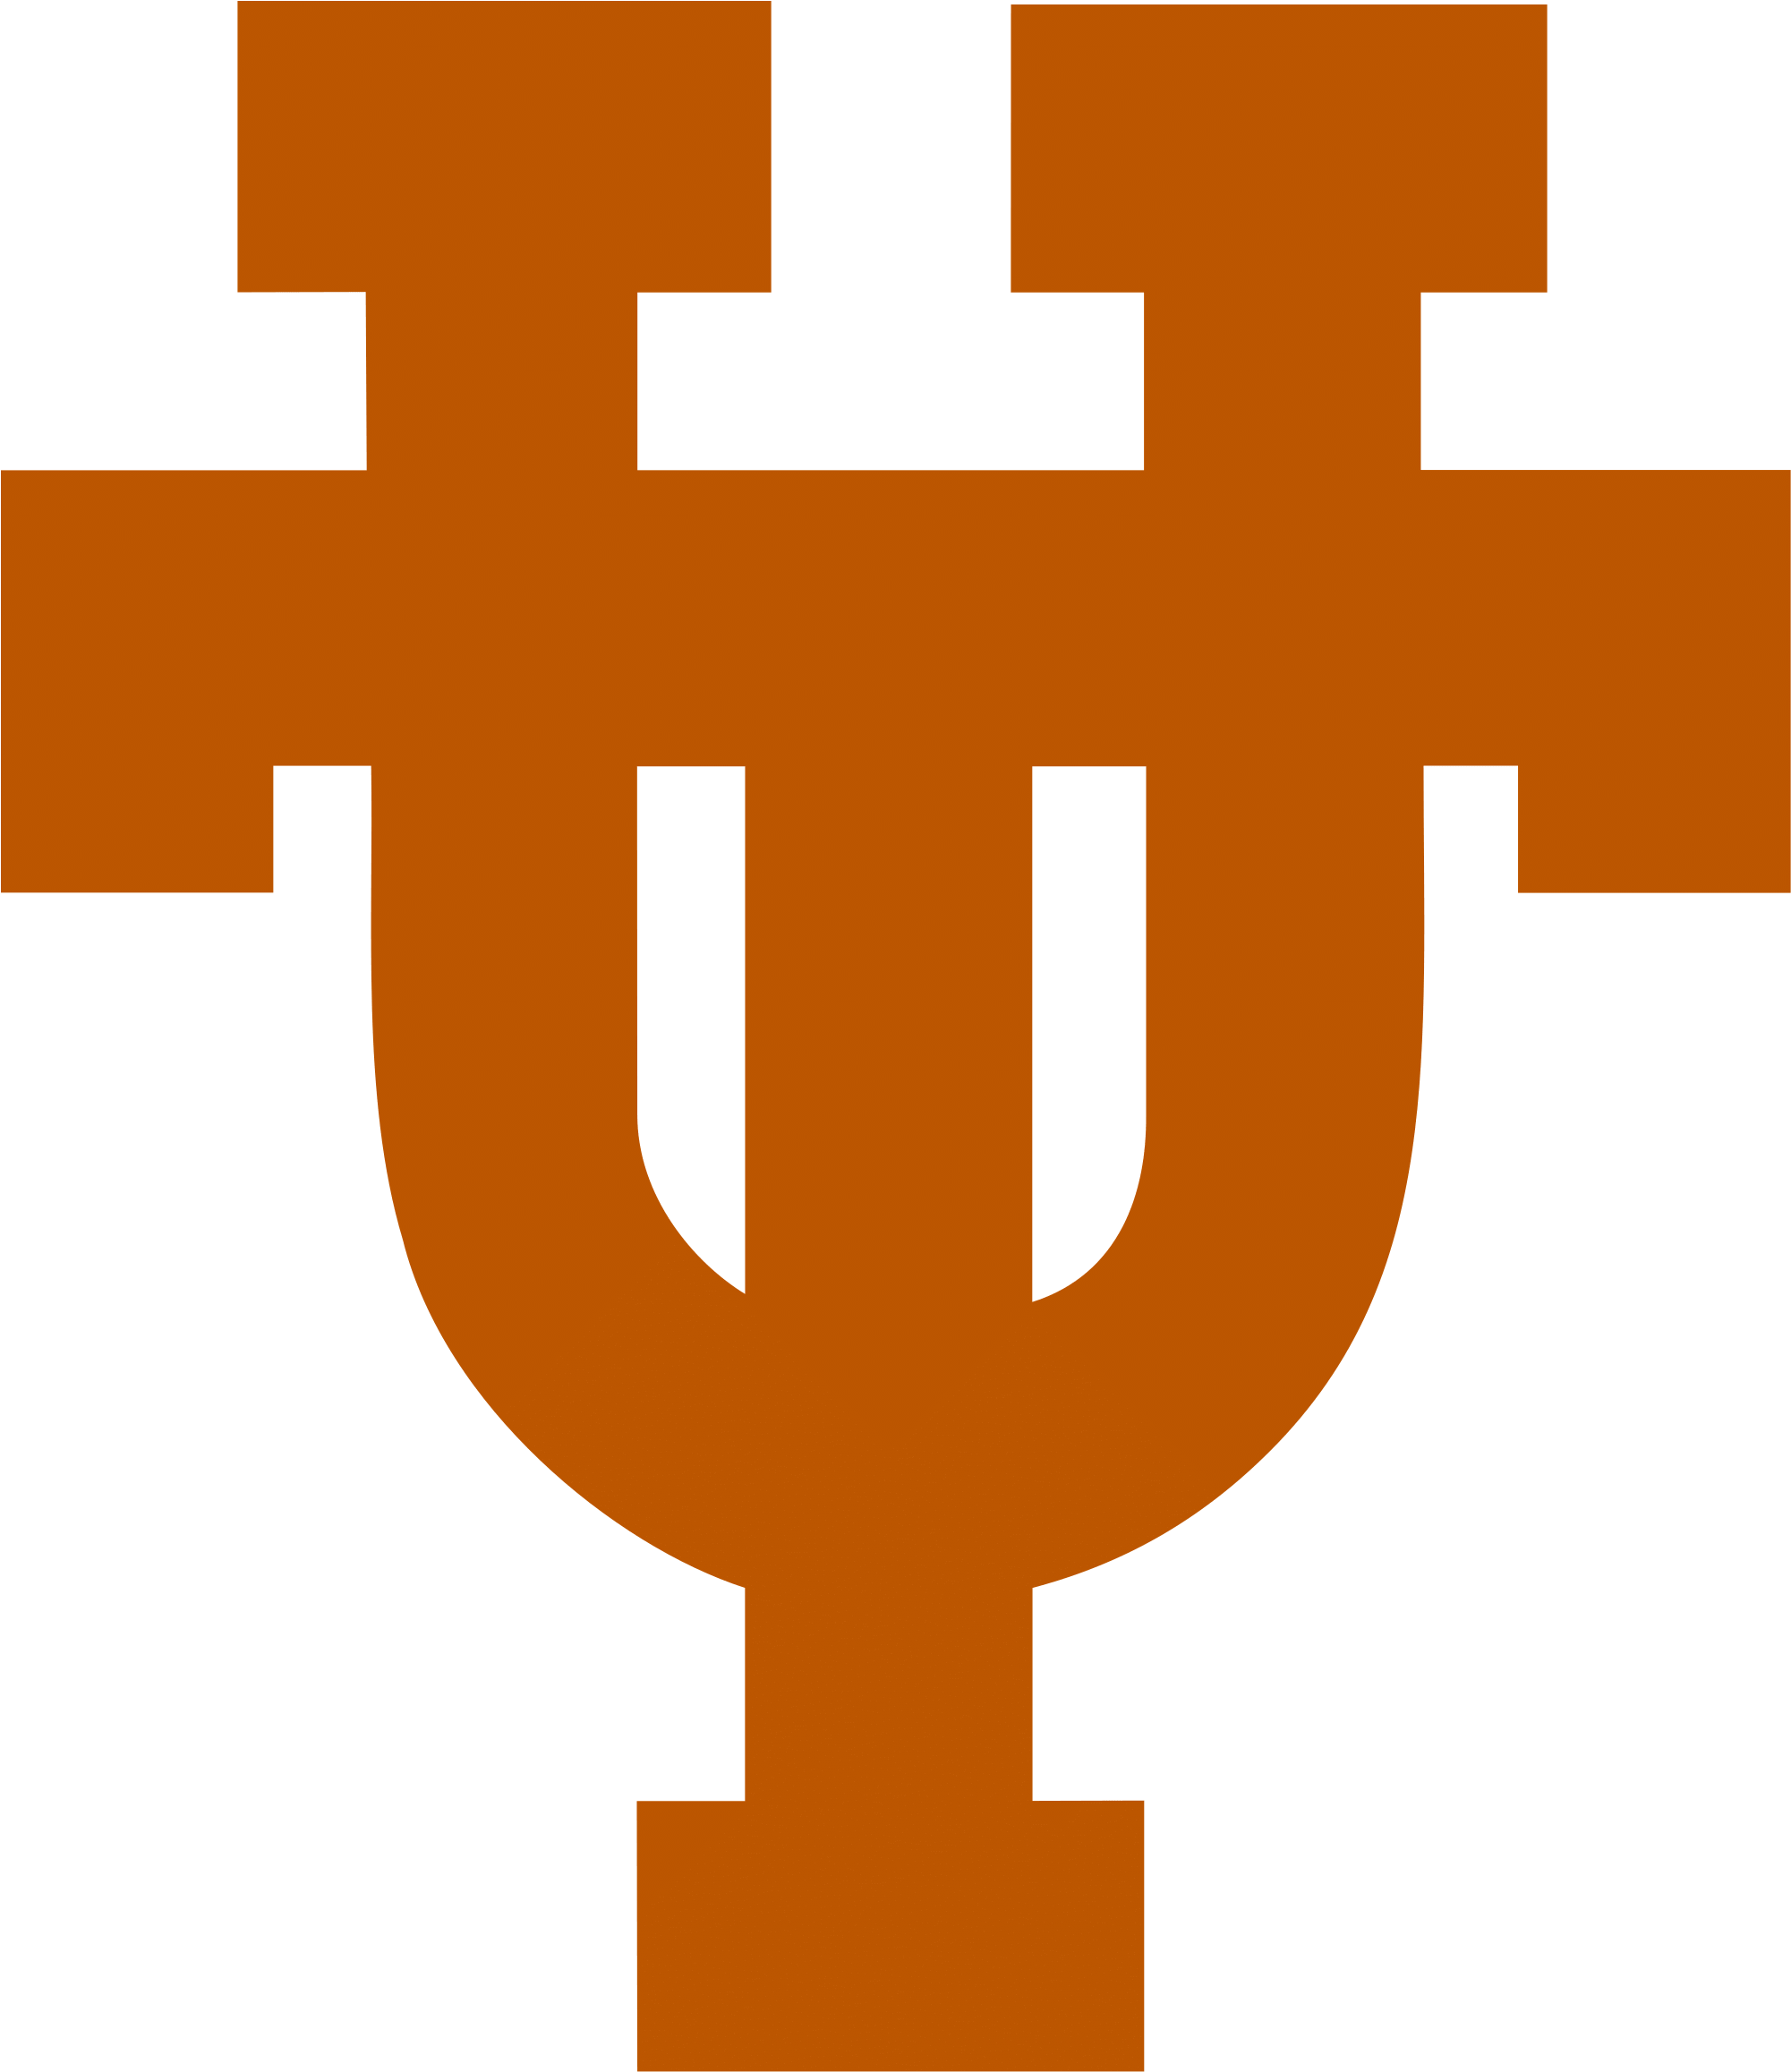 Texas Longhorns Banner Clip Art Royalty Free Stock.